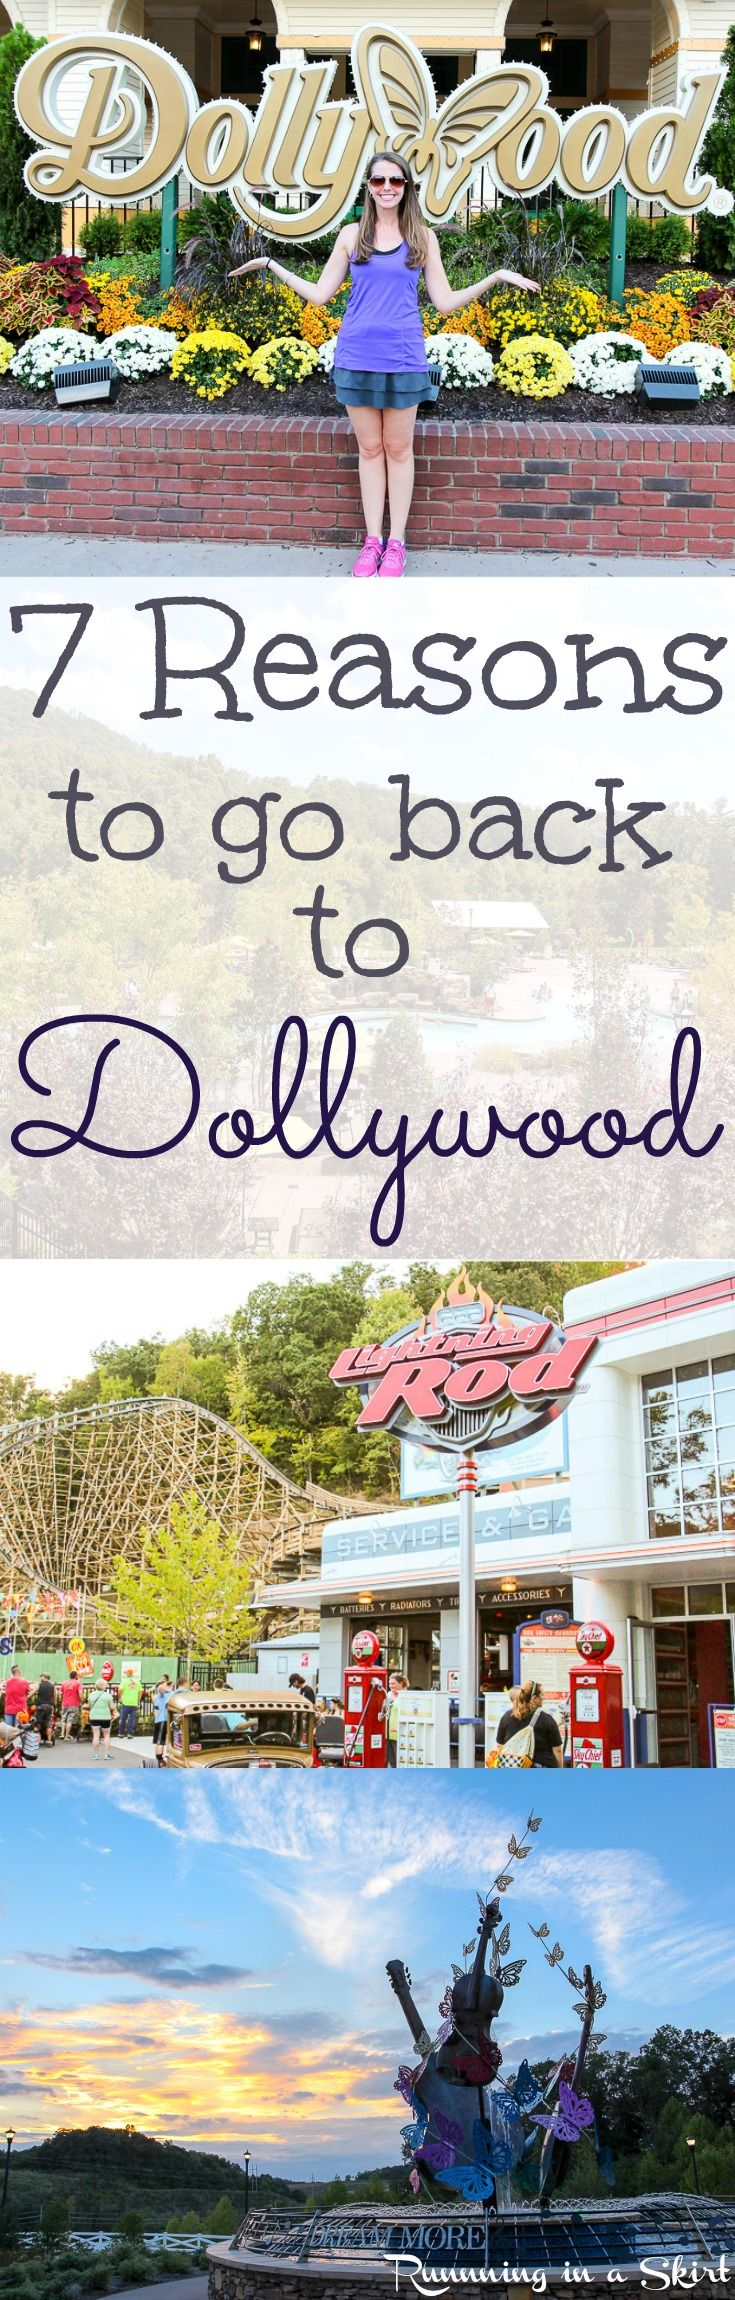 Tips for going to Dollywood in Pigeon Forge, Tennessee and staying at the new resort, DreamMore.  Includes the latest rides, shows, attractions and things to do to make the most out of your vacation.  Lots of pretty photos!/ Running in a Skirt